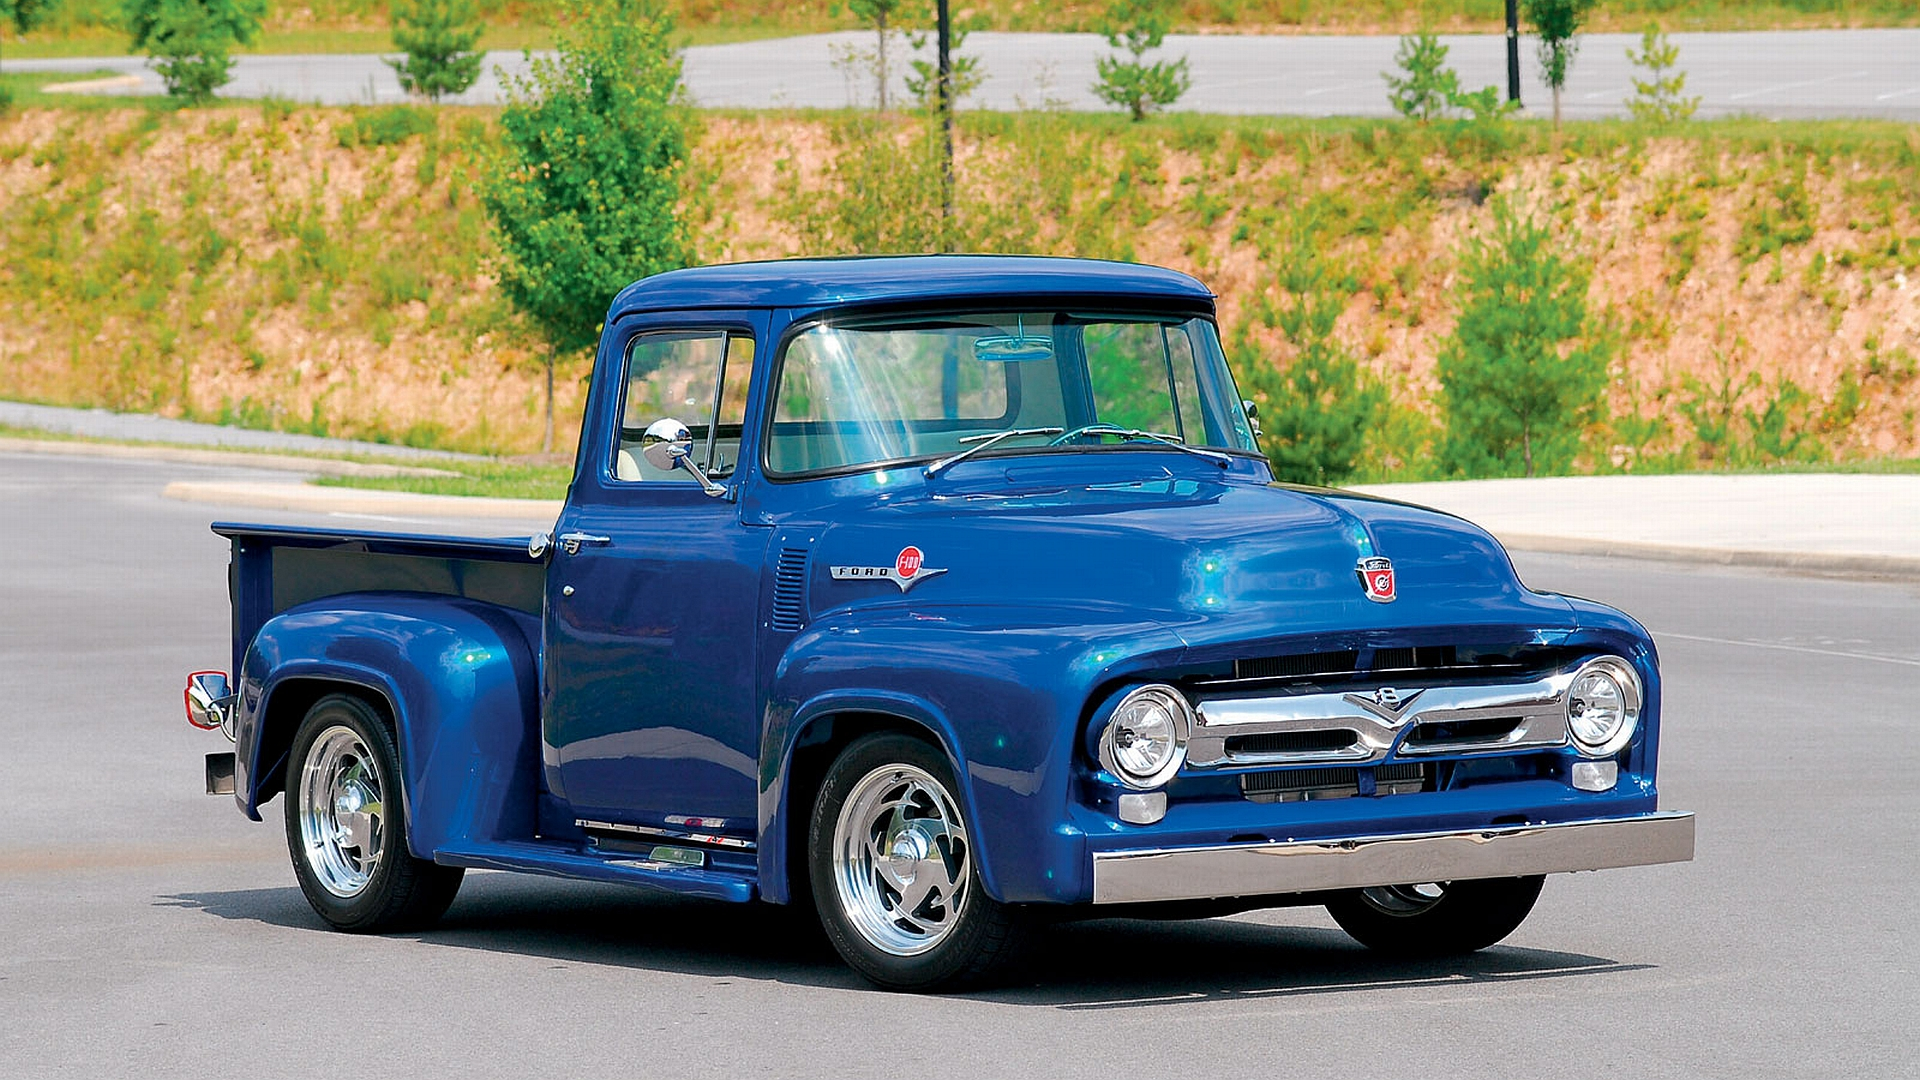 Chevrolet Hd Wallpaper And Image Wallpaper Background